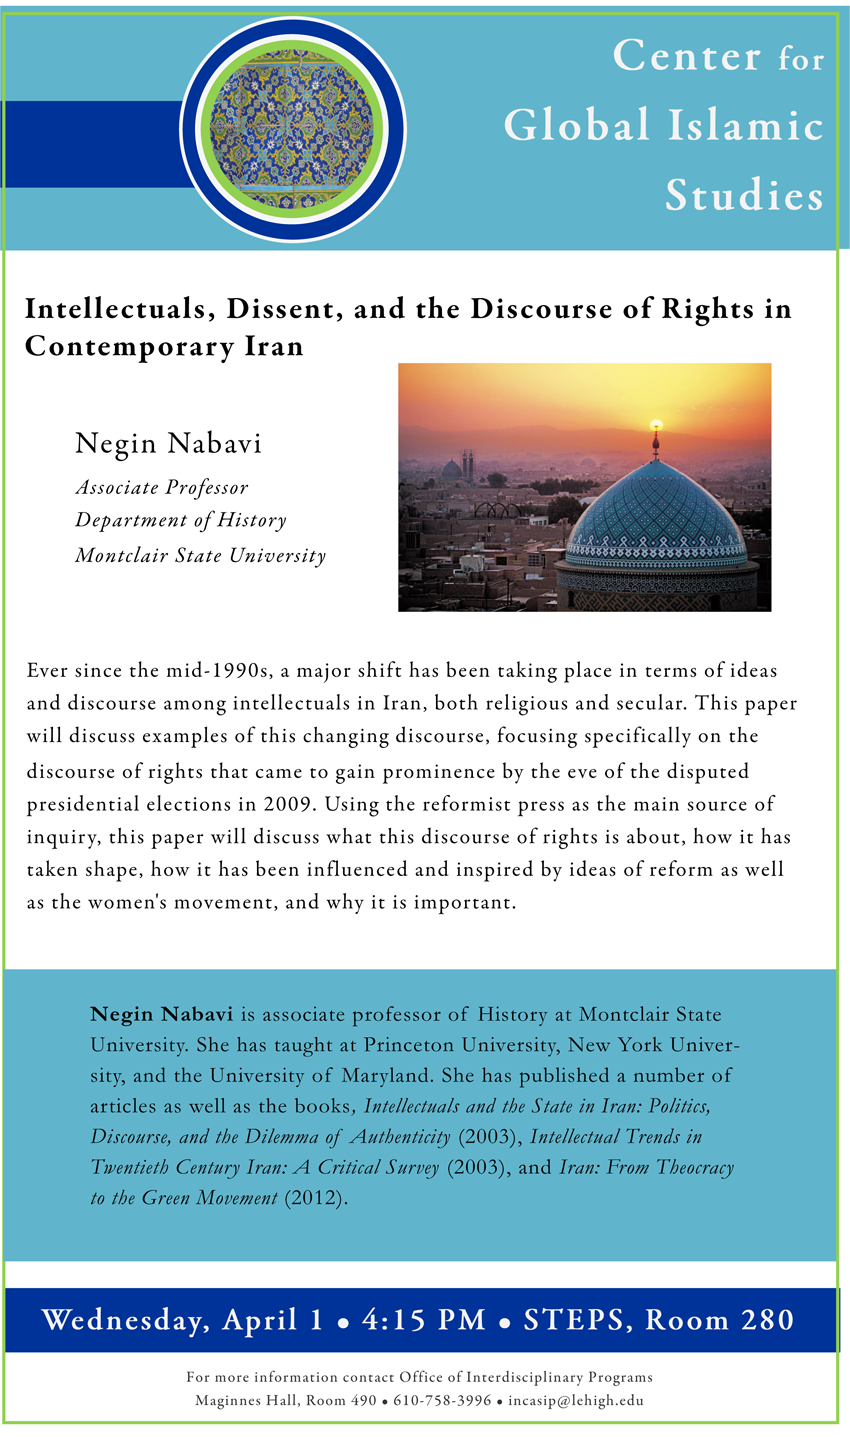 A major shift has been taking place in terms of ideas and discourse among intellectuals in Iran, both religious and secular. This paper will discuss examples of this changing discourse.